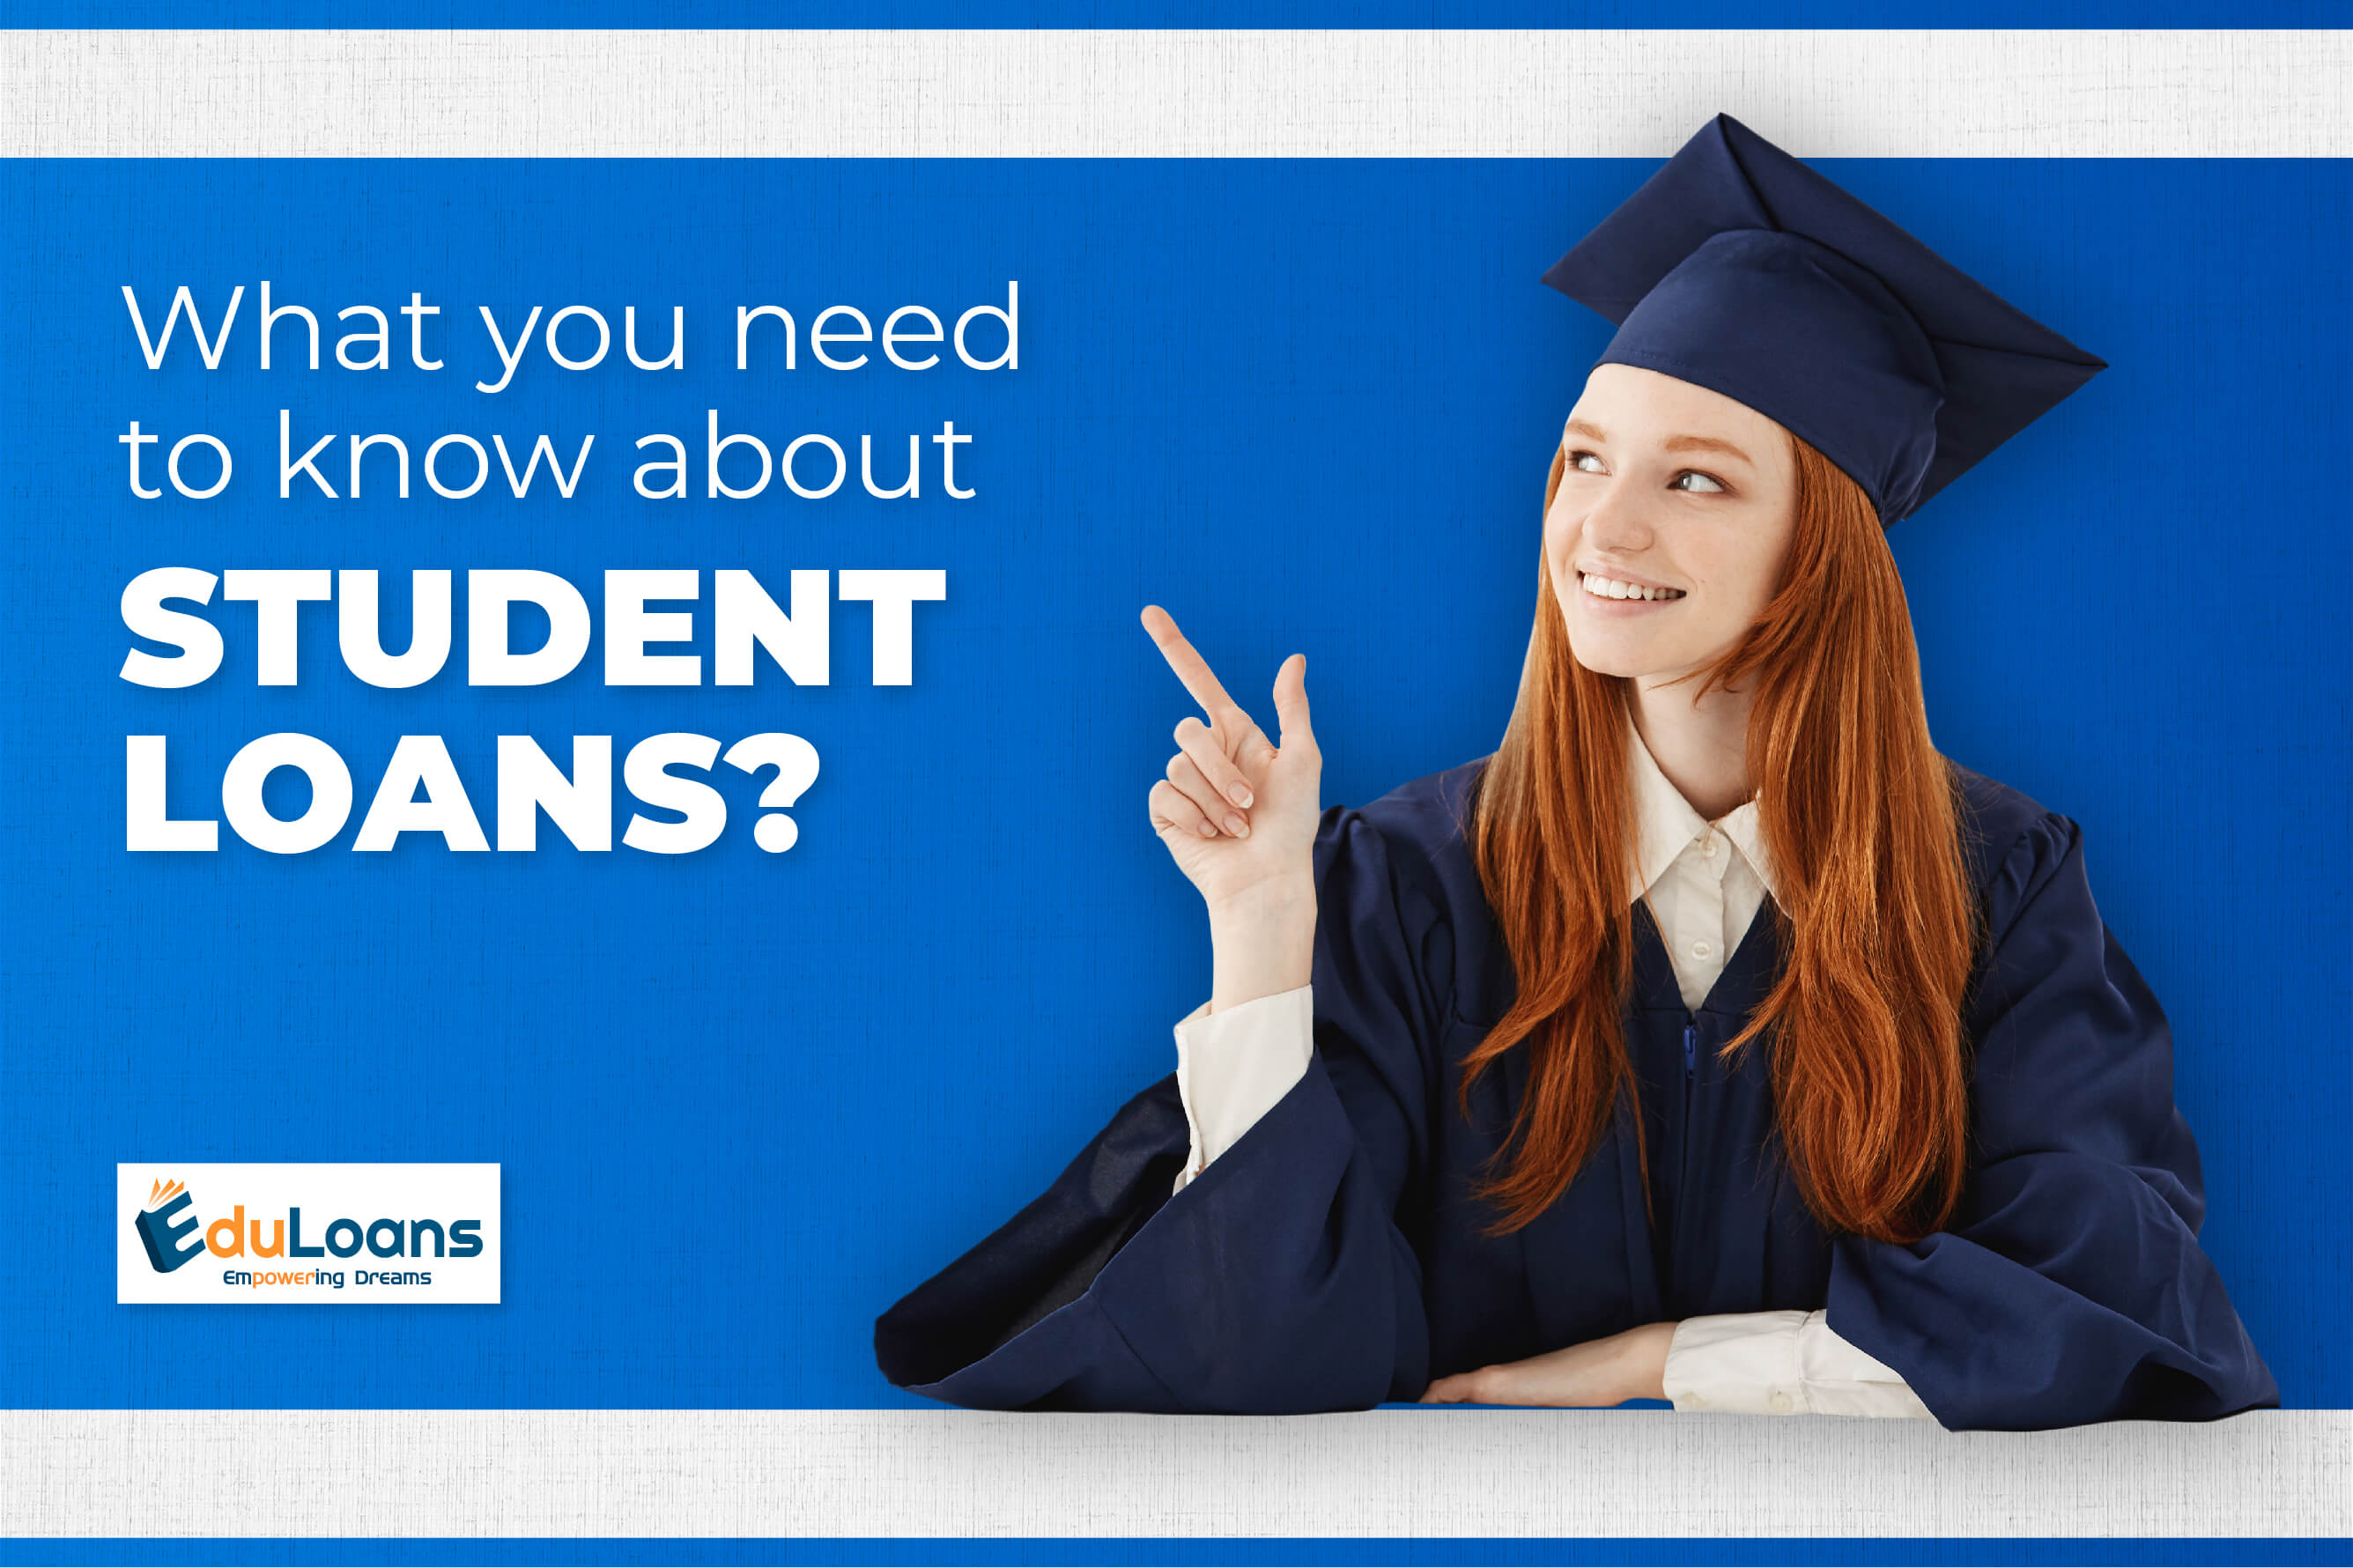 What You Need to Know About Student Loans?